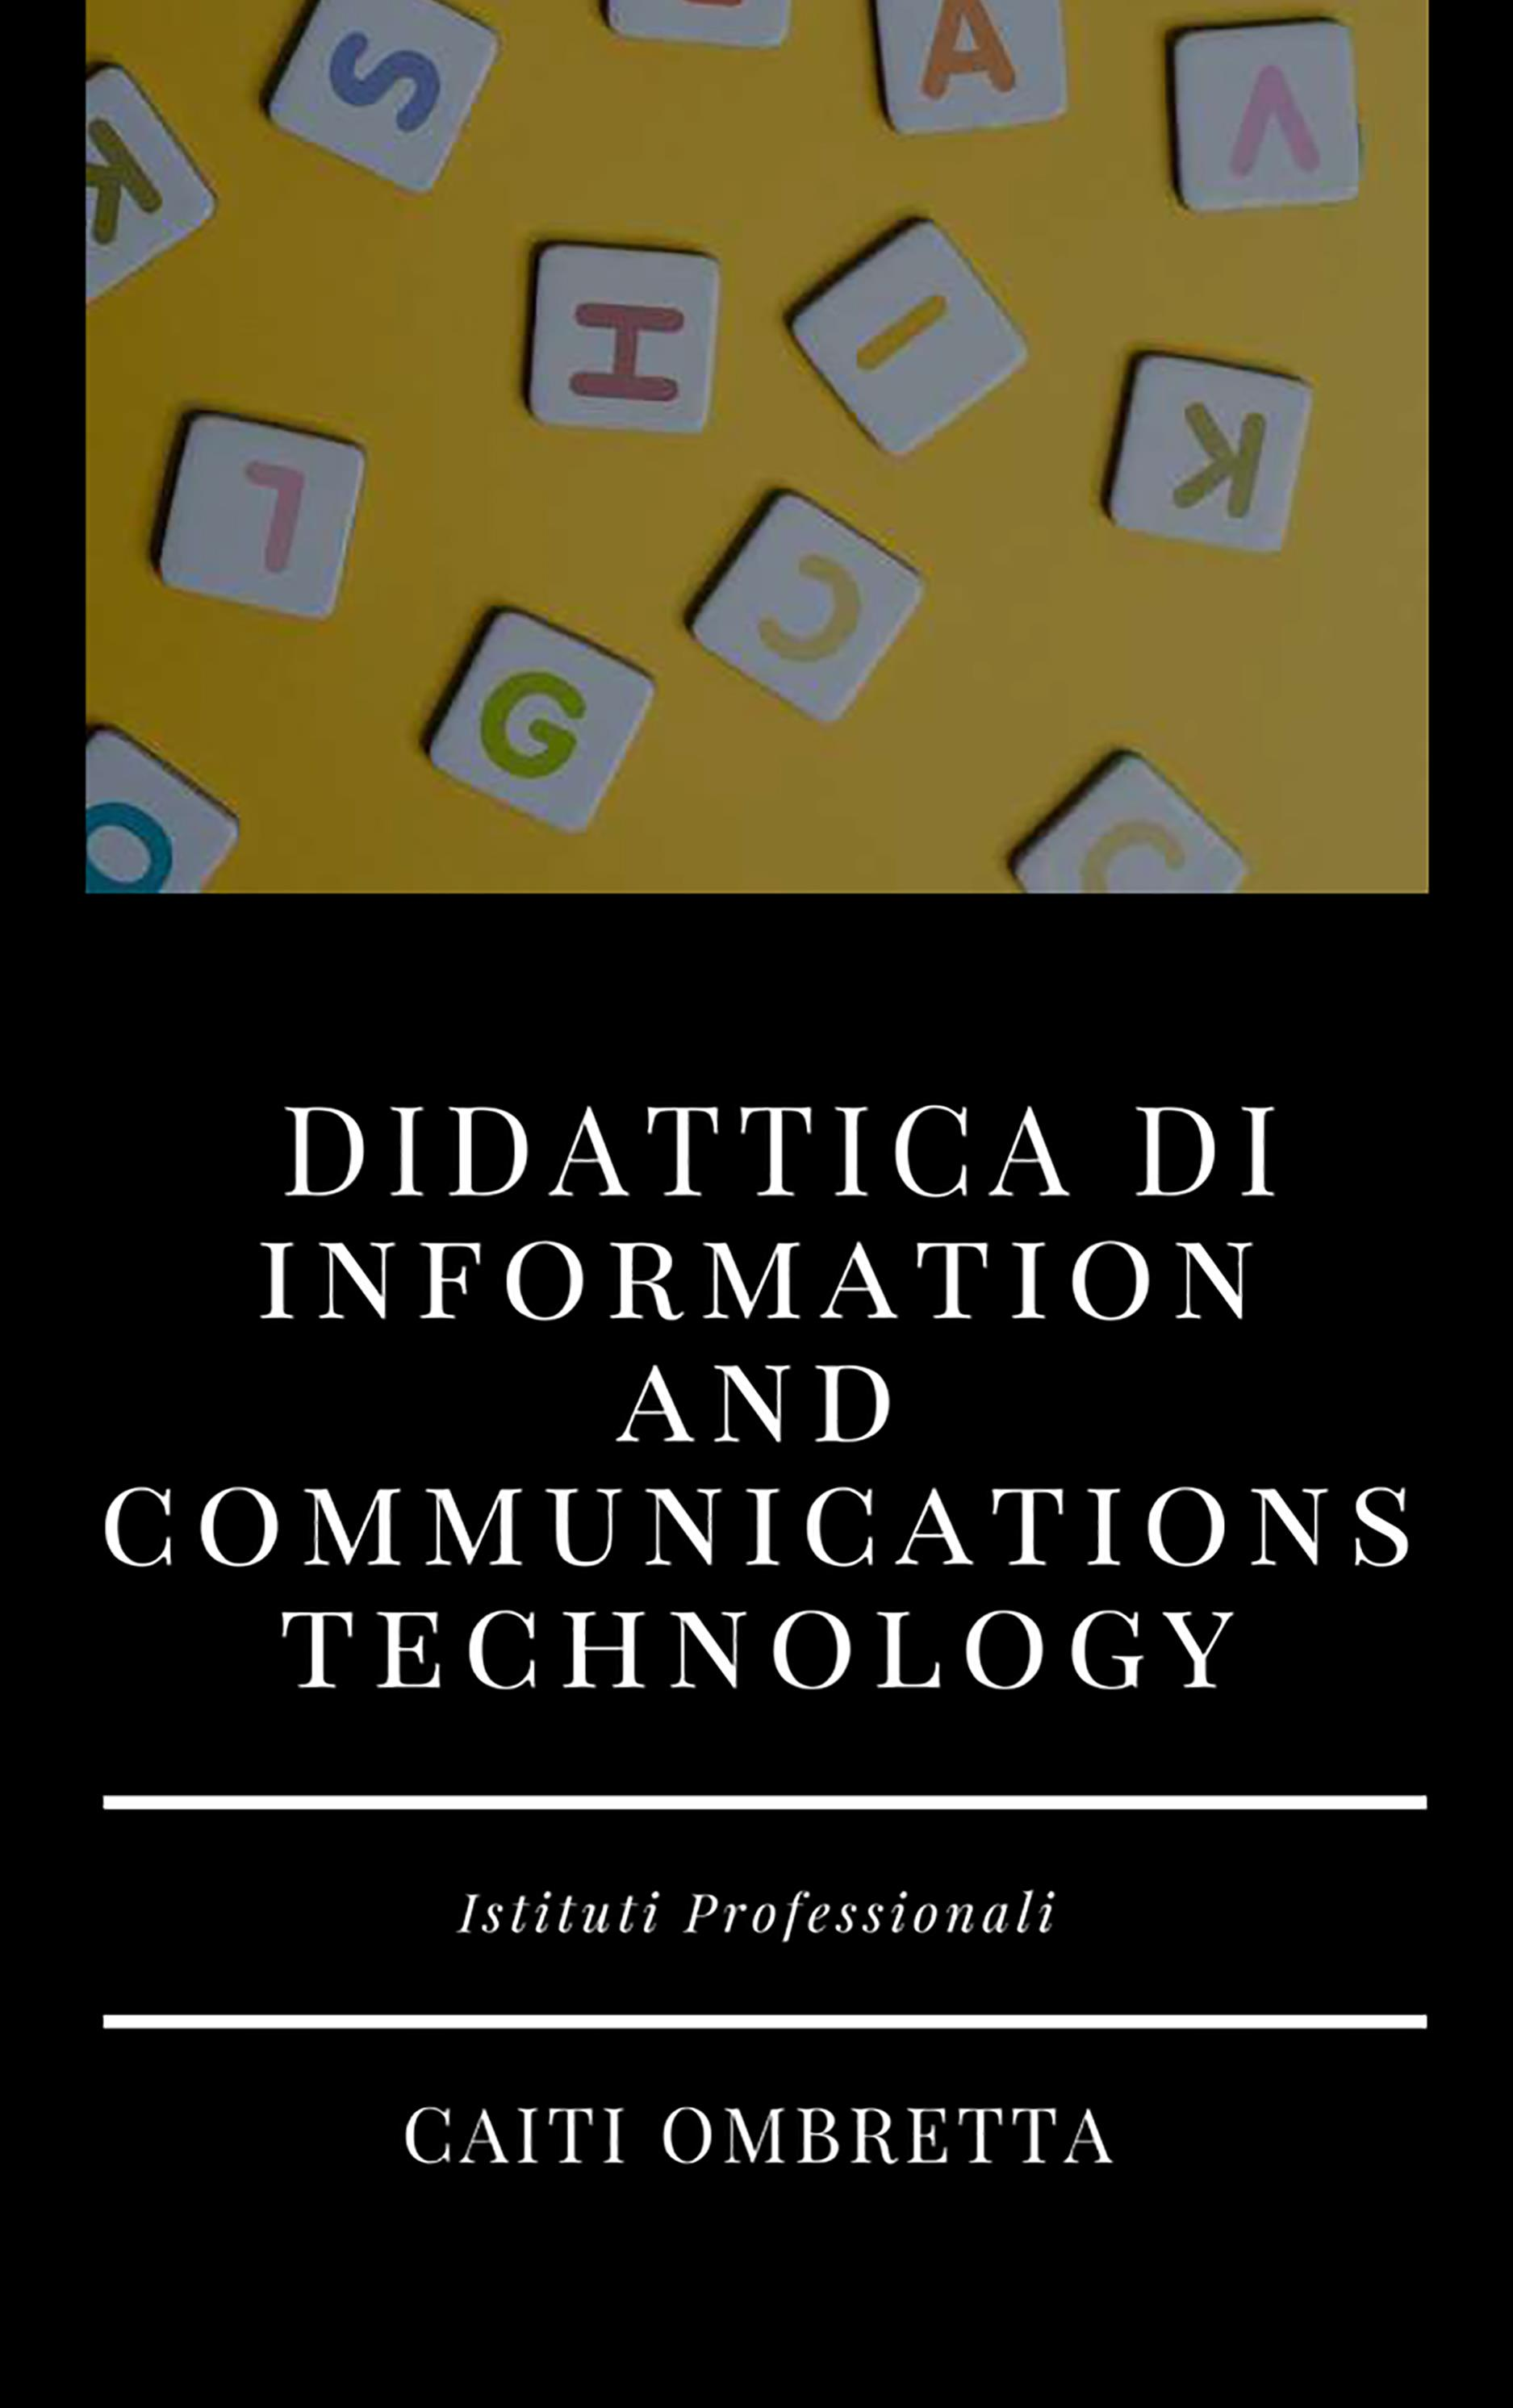 Didattica di Information and communications technology